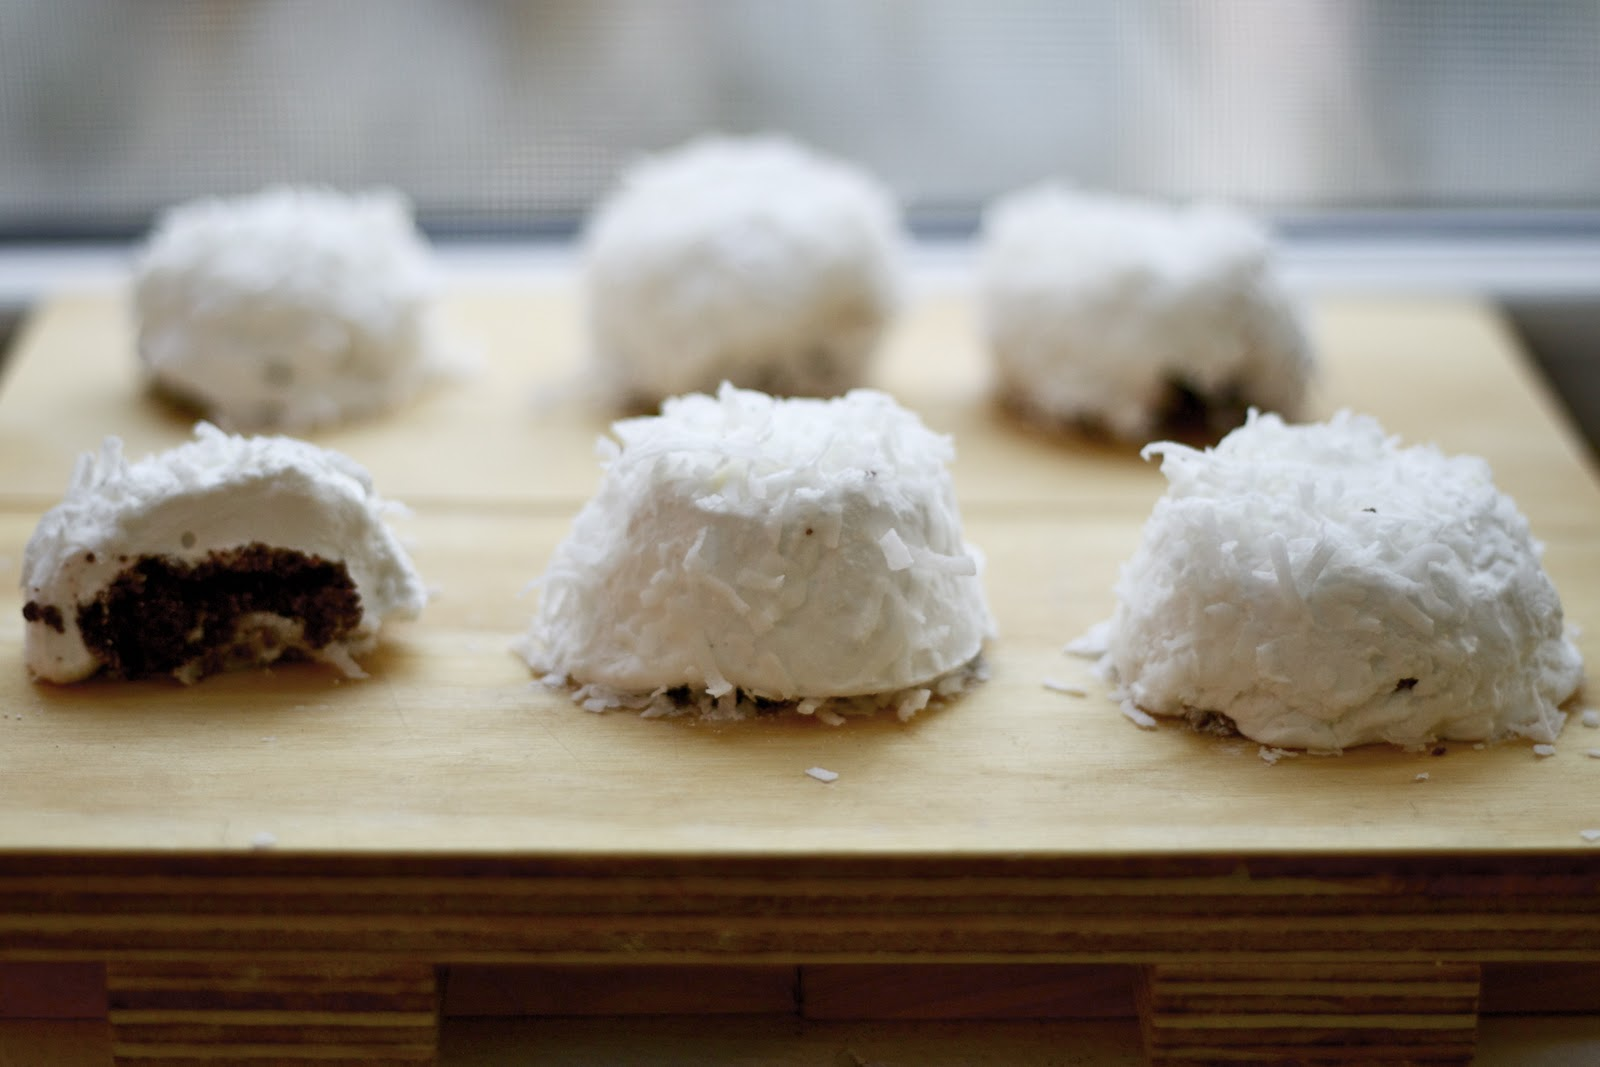 homemade sno-balls - my name is yeh